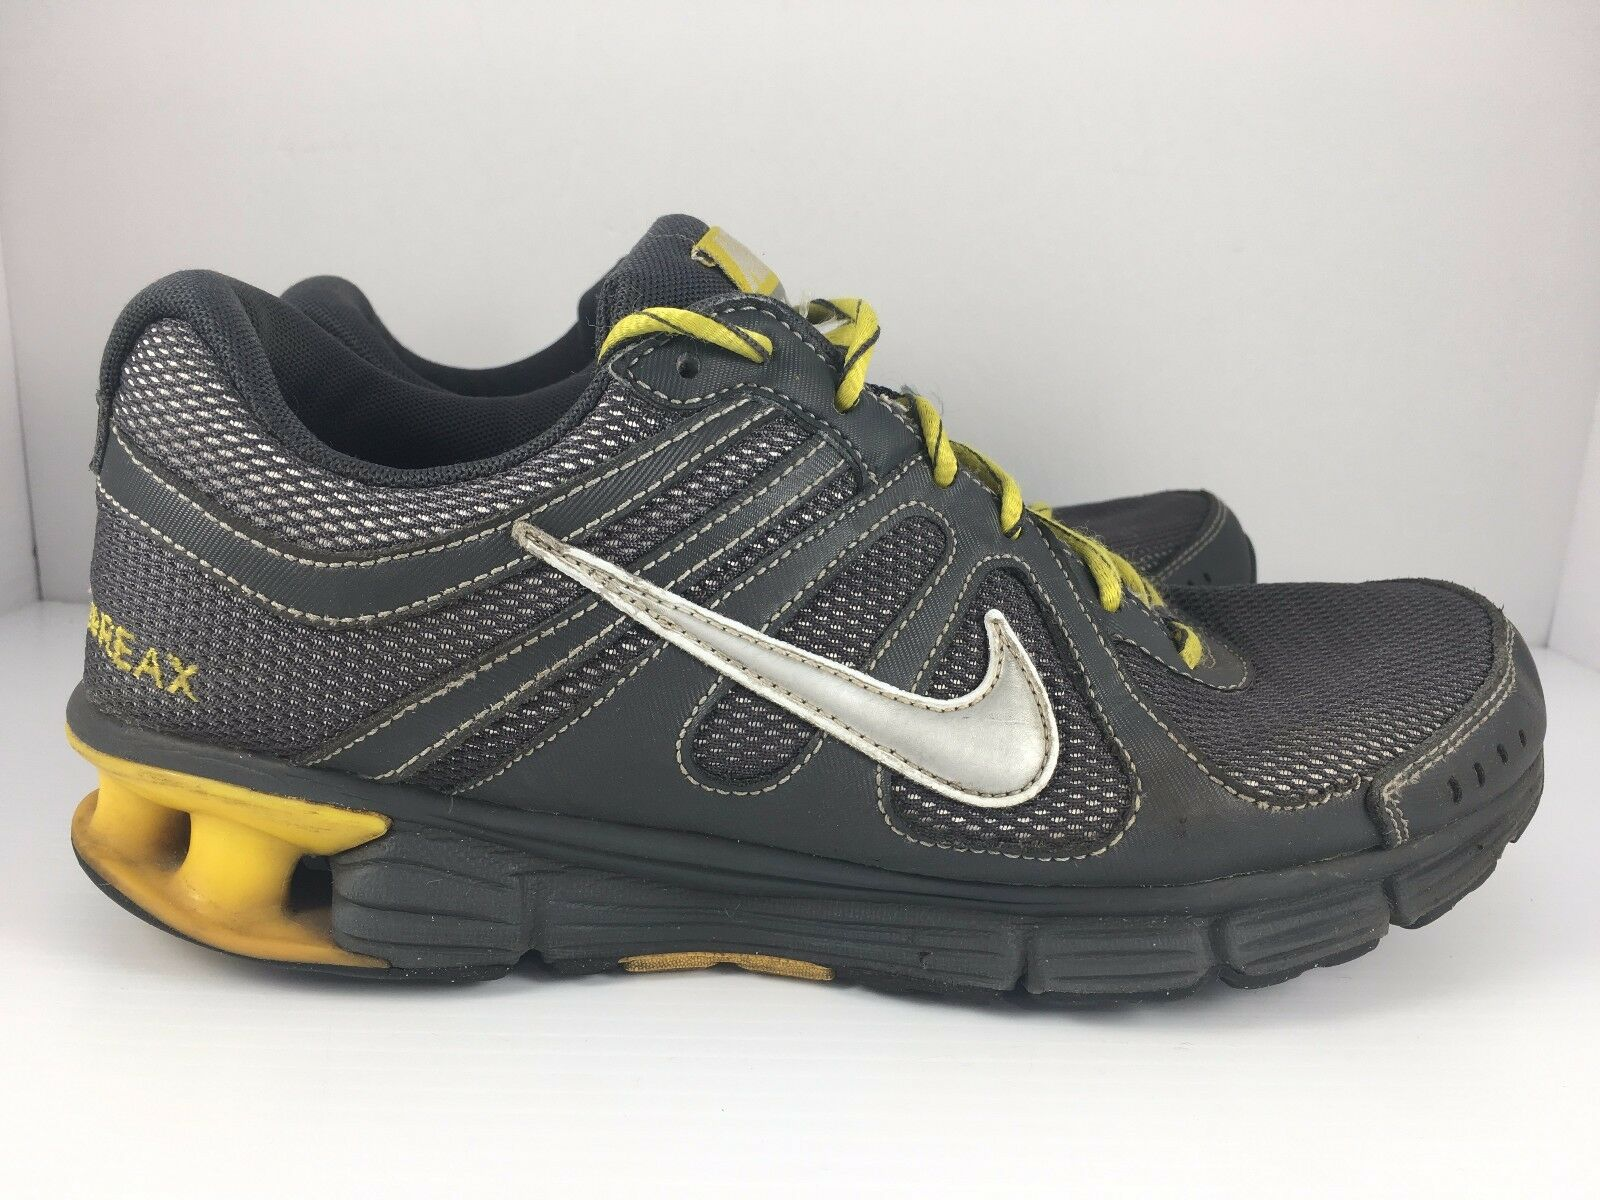 Nike Reax Rocket Men US 8 Yellow + Gray Athletic Trainers Running Shoes Wild casual shoes